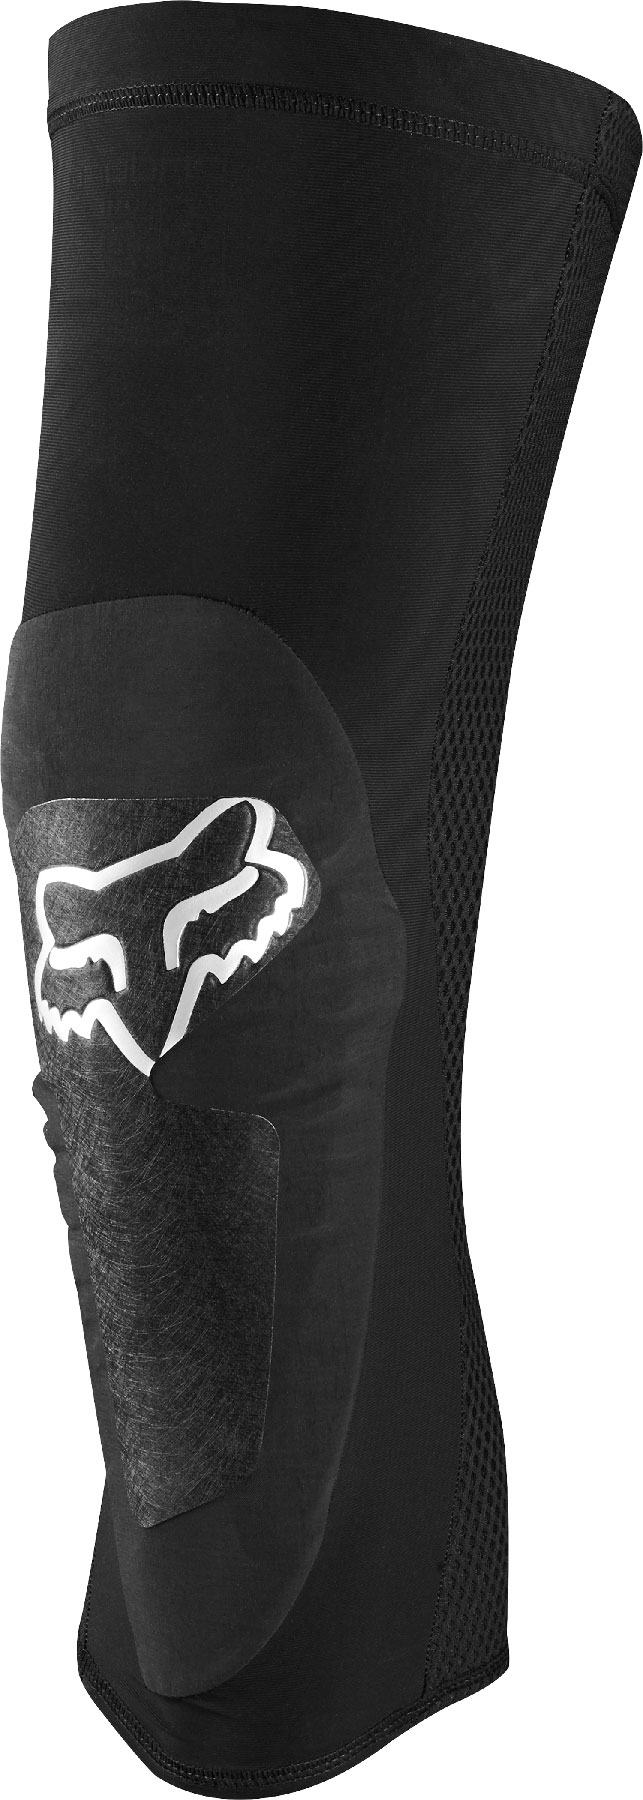 Fox Racing Enduro Pro Knee/Shin Guards | Amour